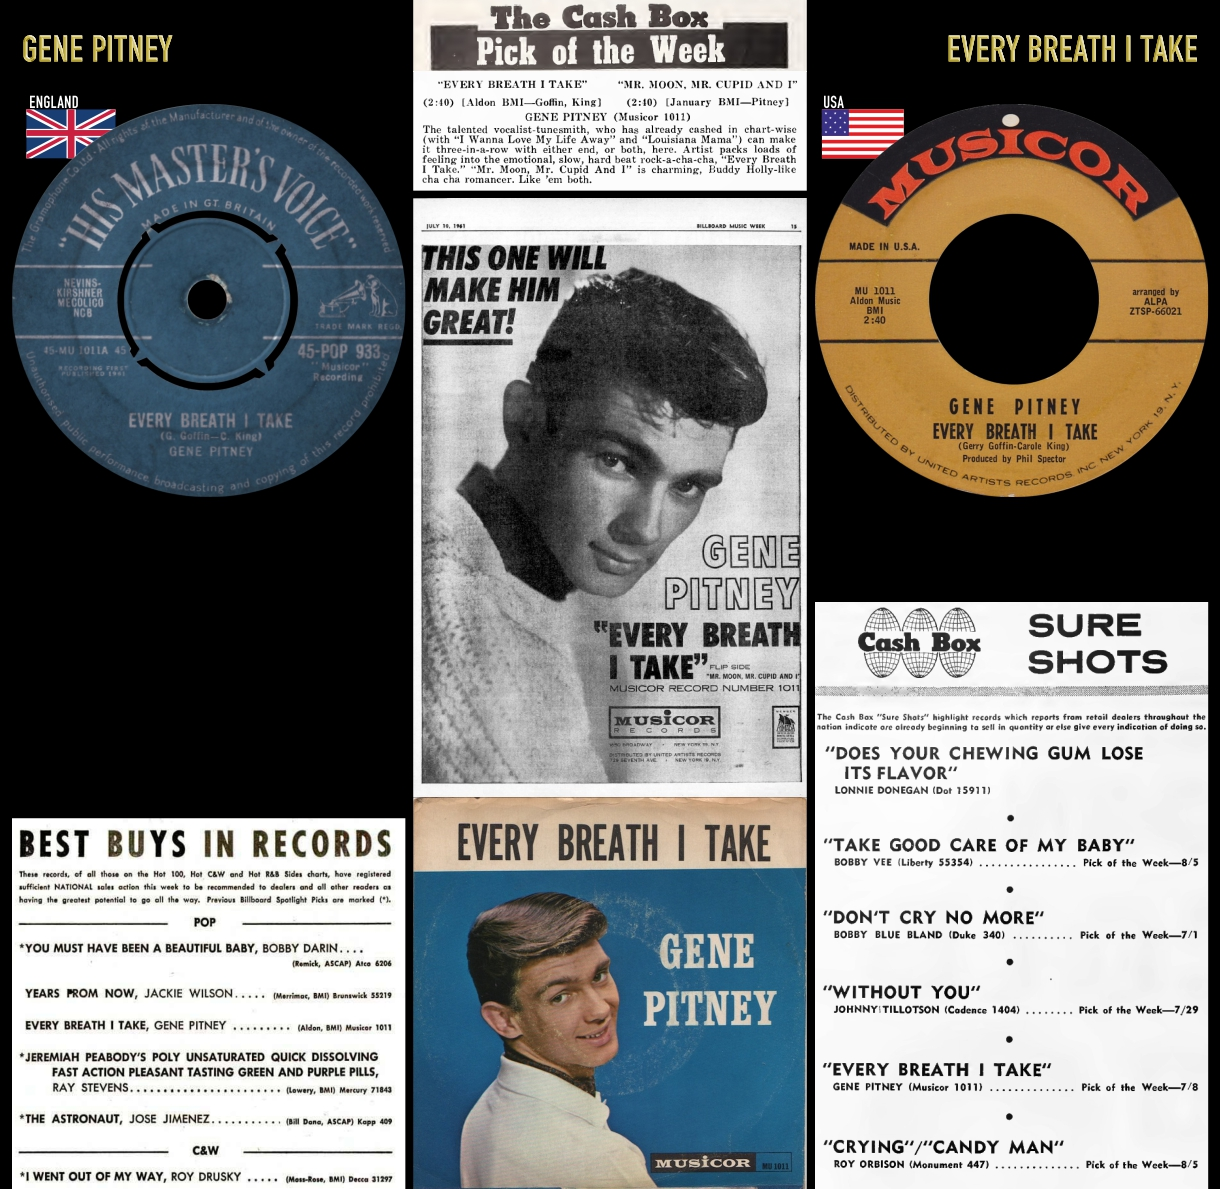 610805_Gene Pitney_Every Breath I Take